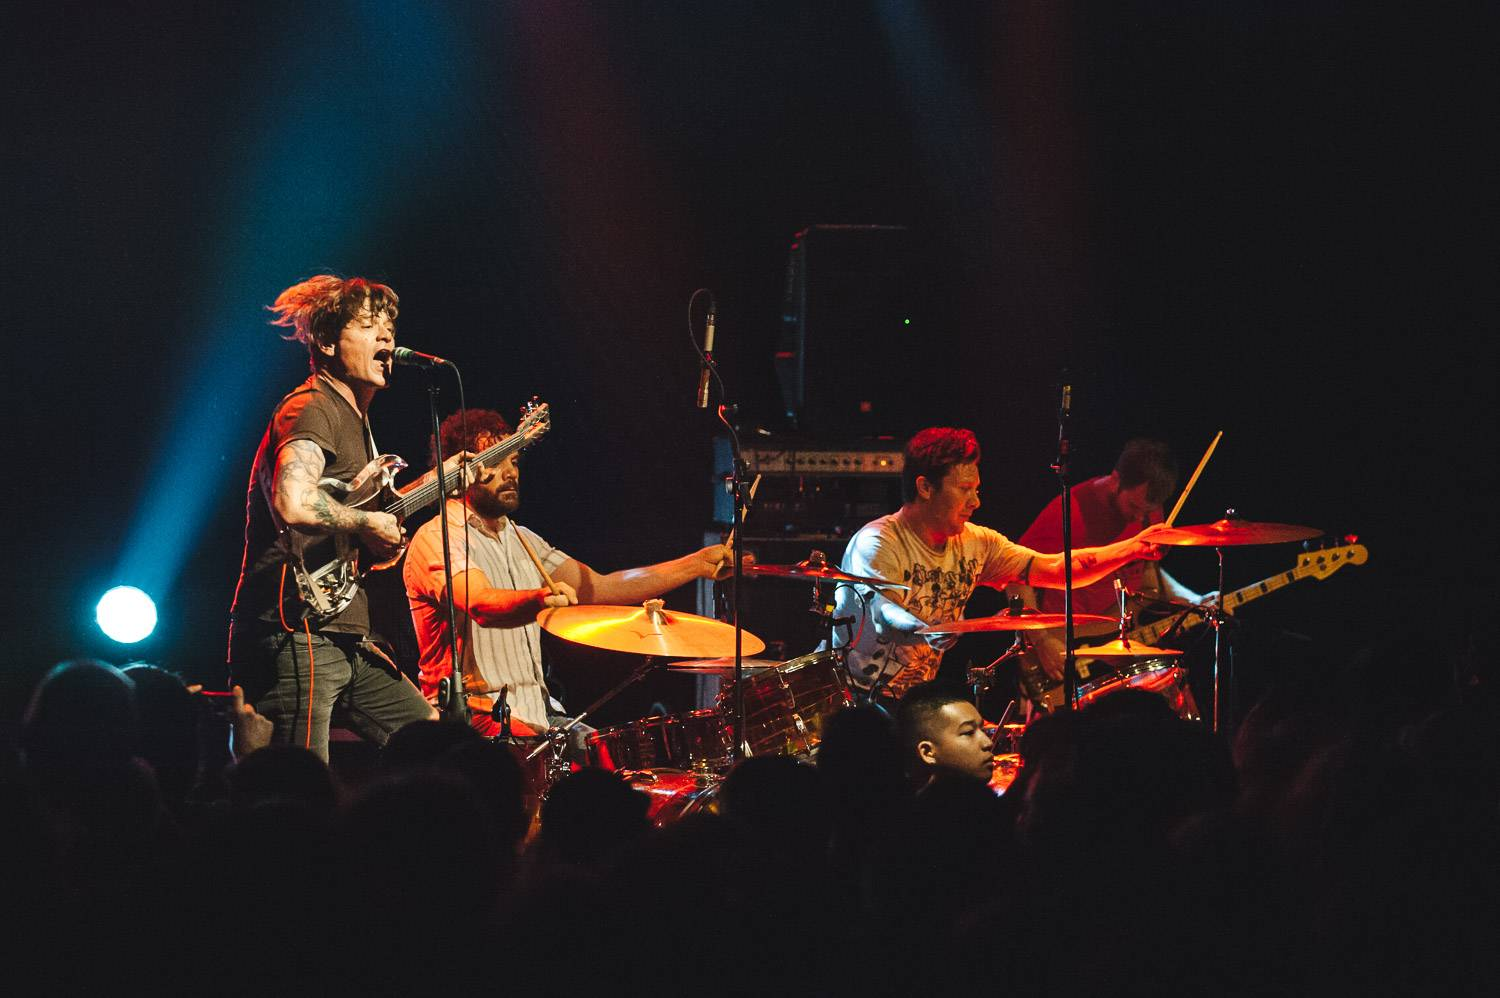 Oh Sees at the Commodore Ballroom, Vancouver, Sept 24 2017. Pavel Boiko photo.